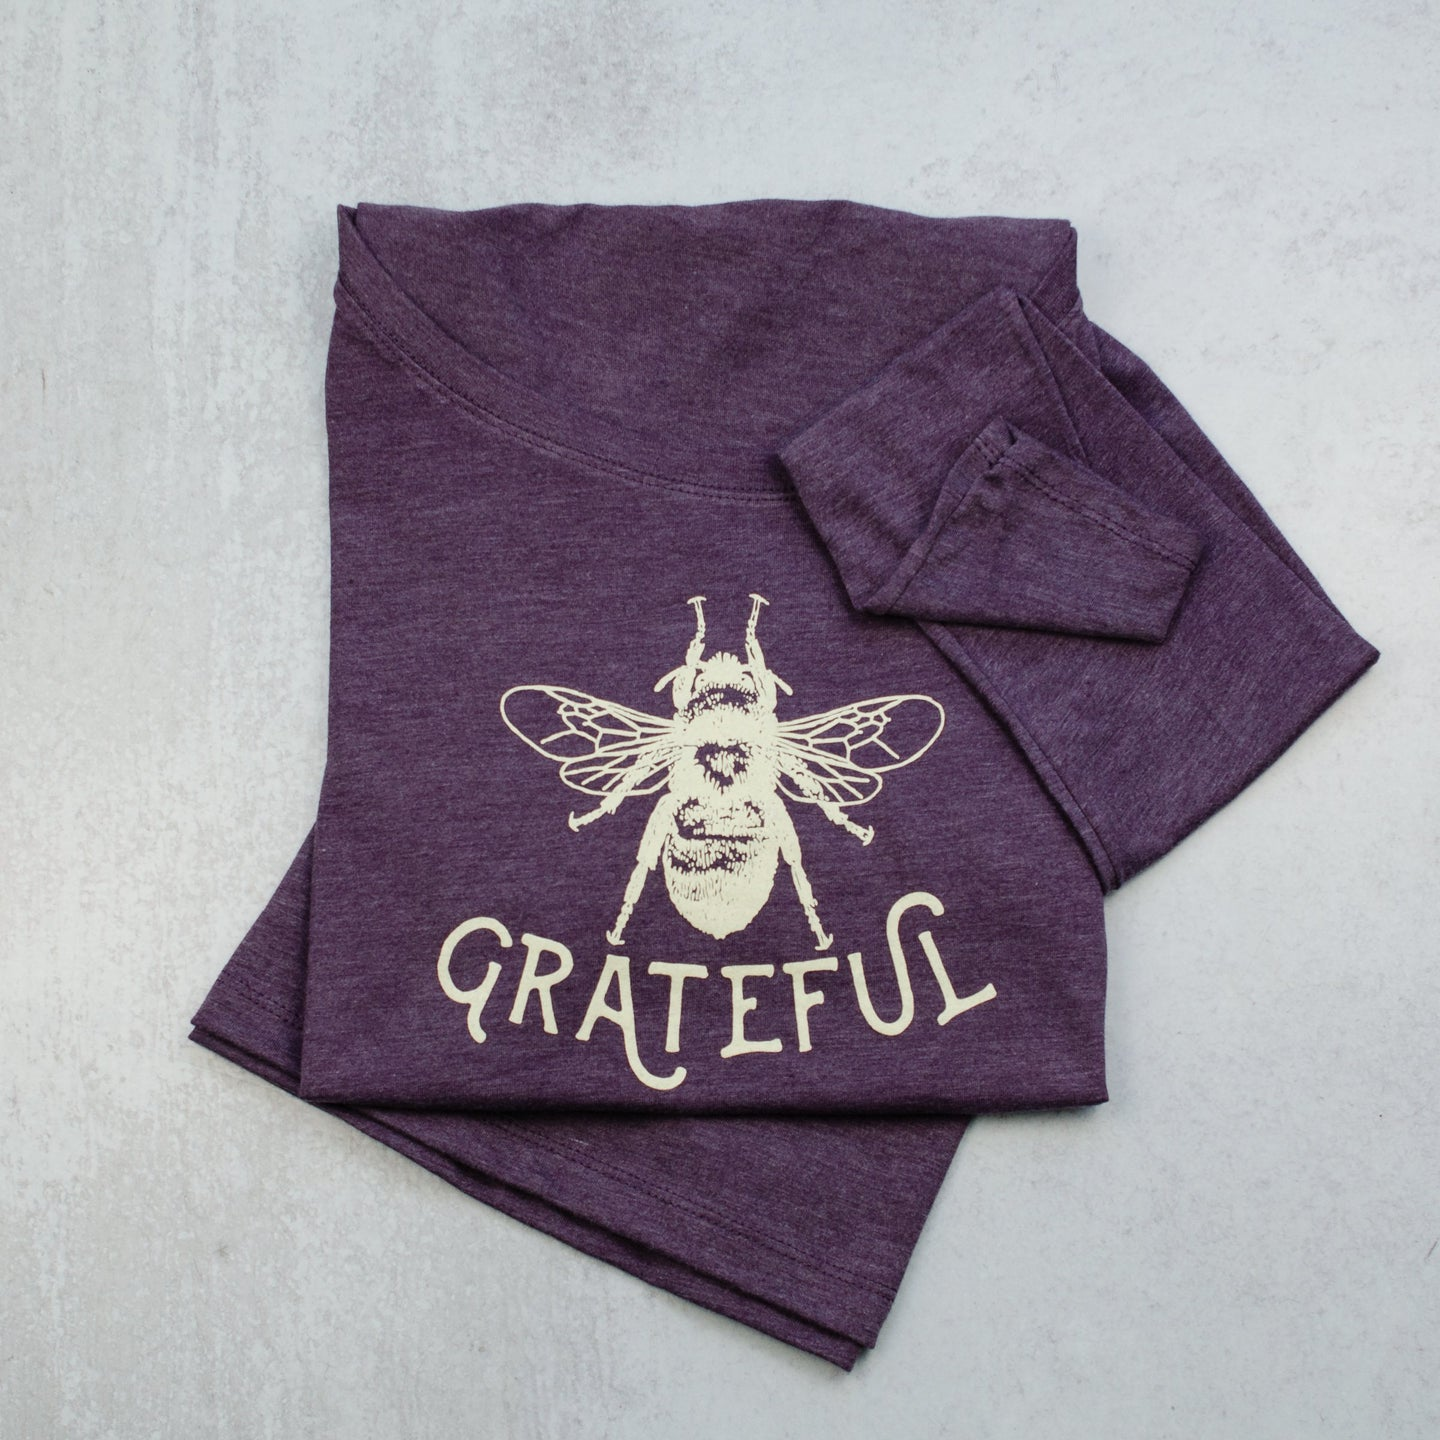 Bee grateful scoop neck long sleeve ladies tee, t-shirt in purple